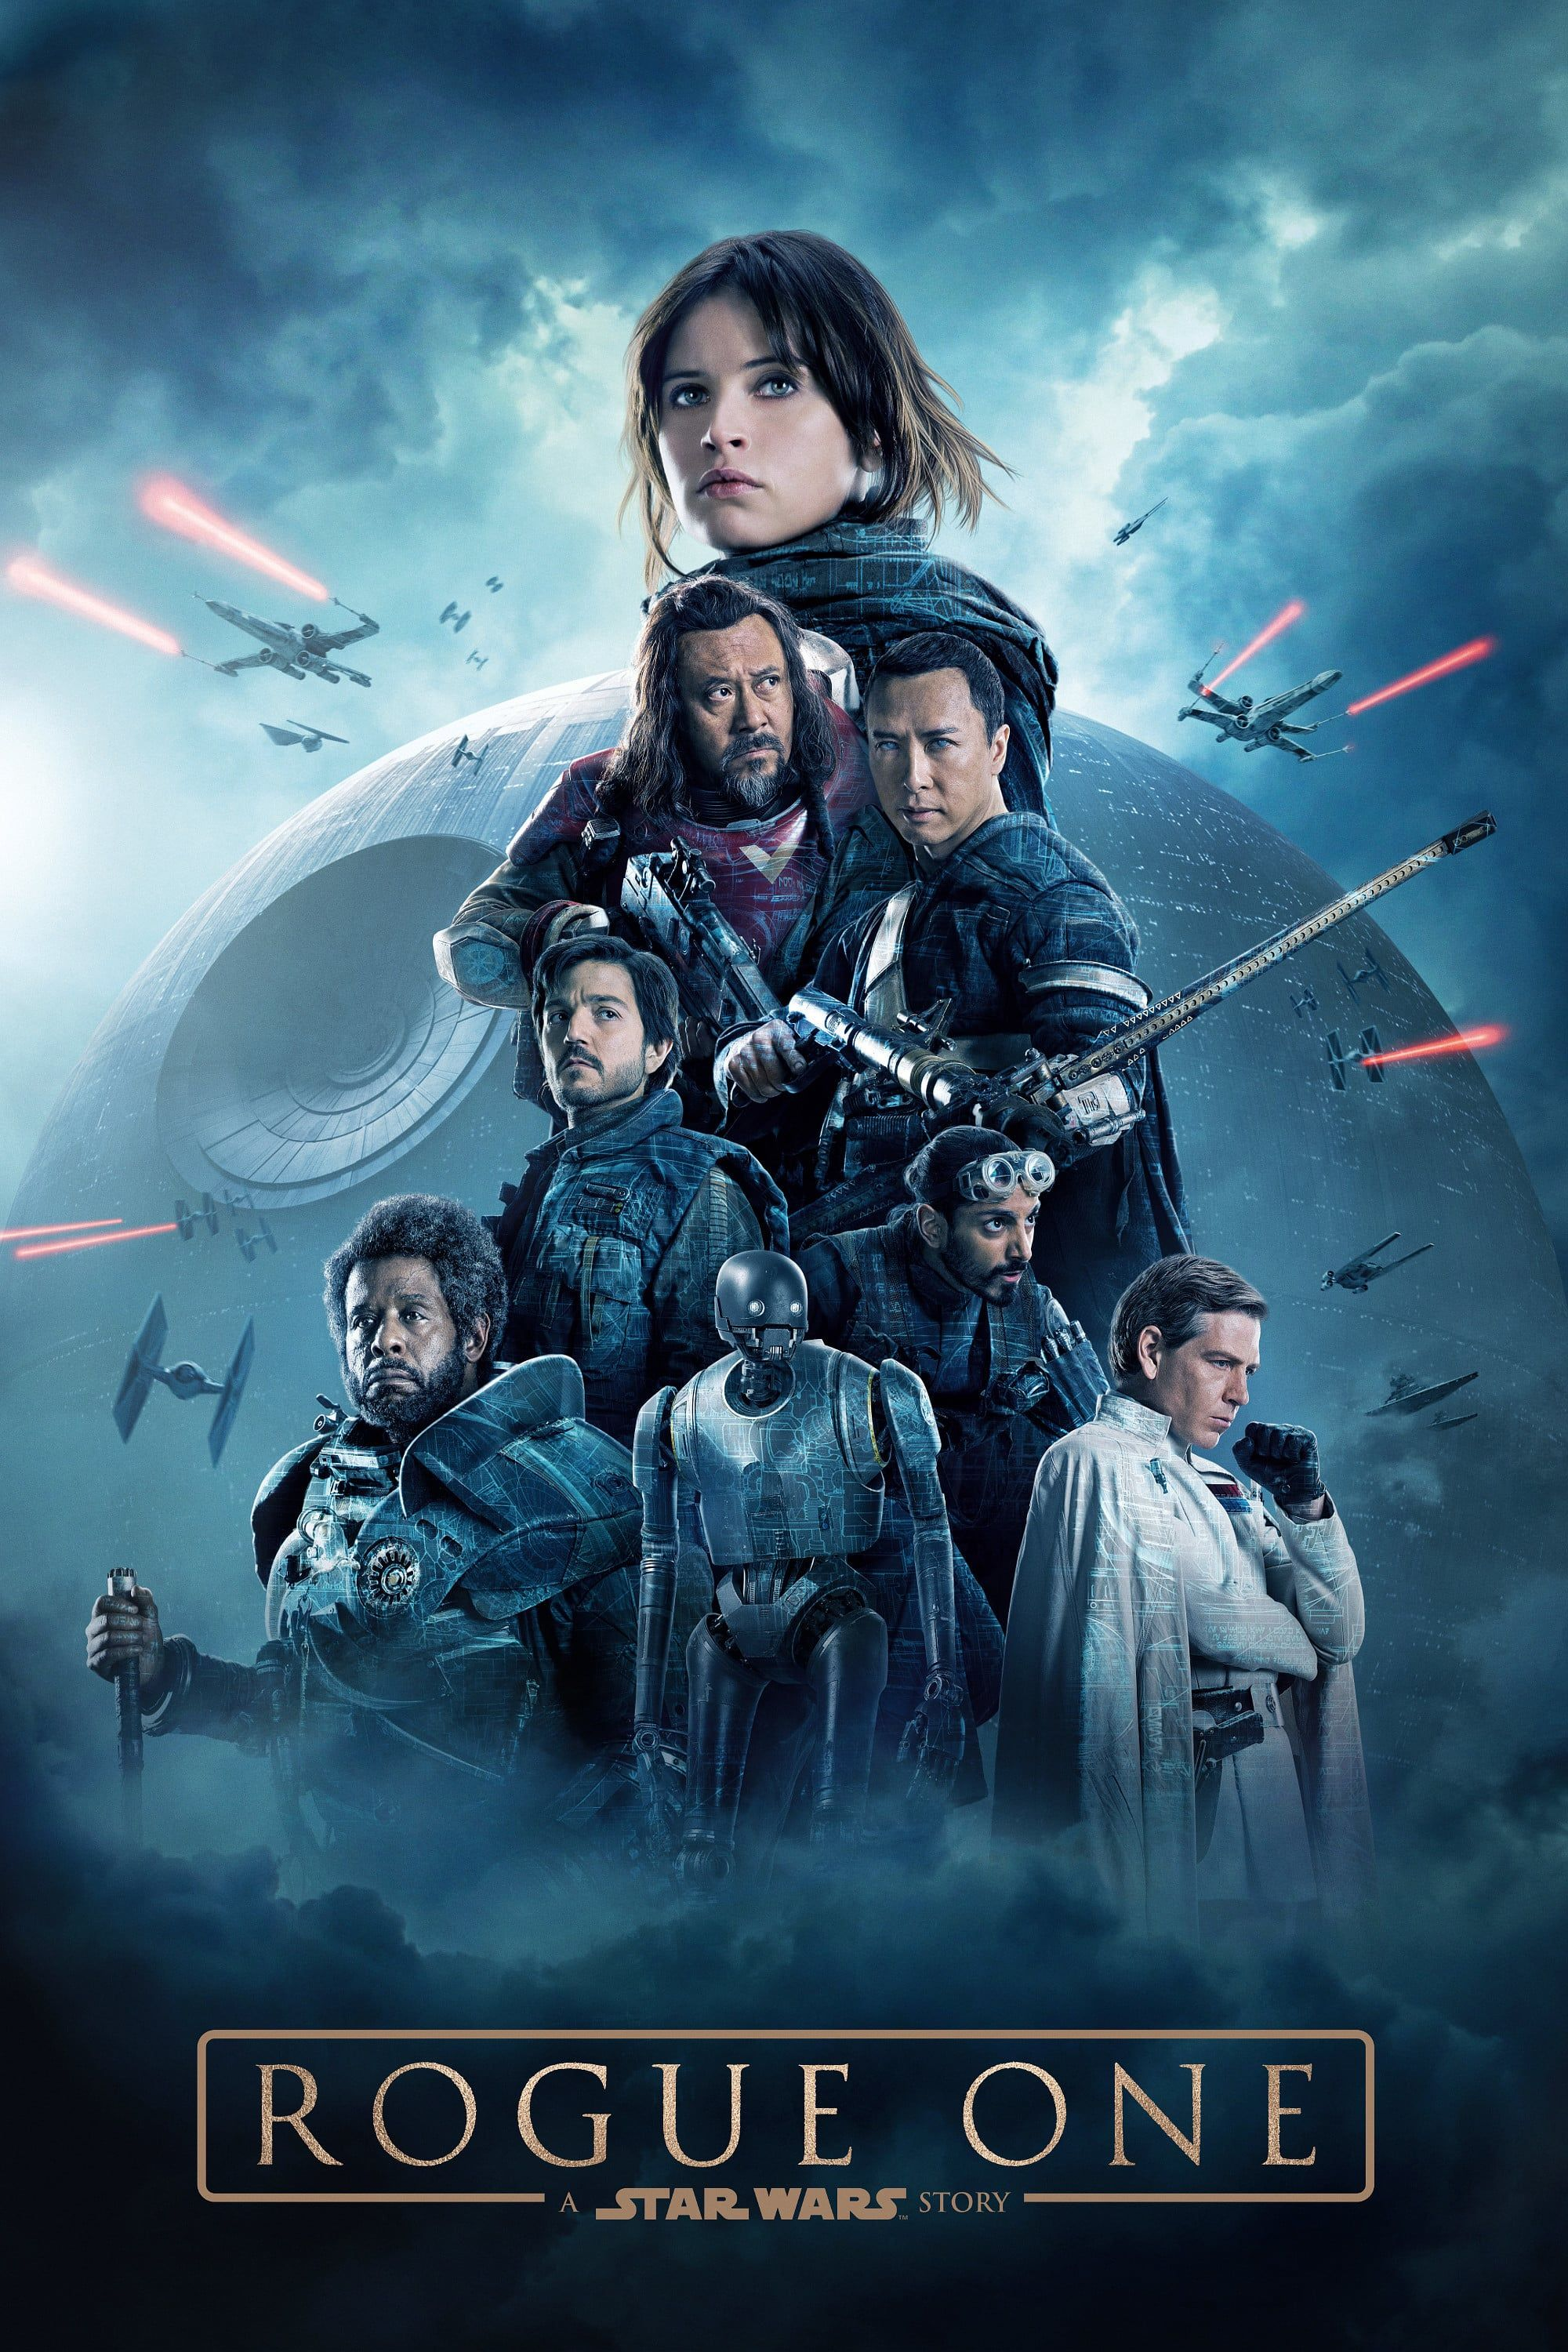 Rogue One A Star Wars Story 2016 Full Movie Blu Ray Quality Enjoy Full Movie Click Link Rogue One Star Wars Star Wars Movies Posters Star Wars Pictures